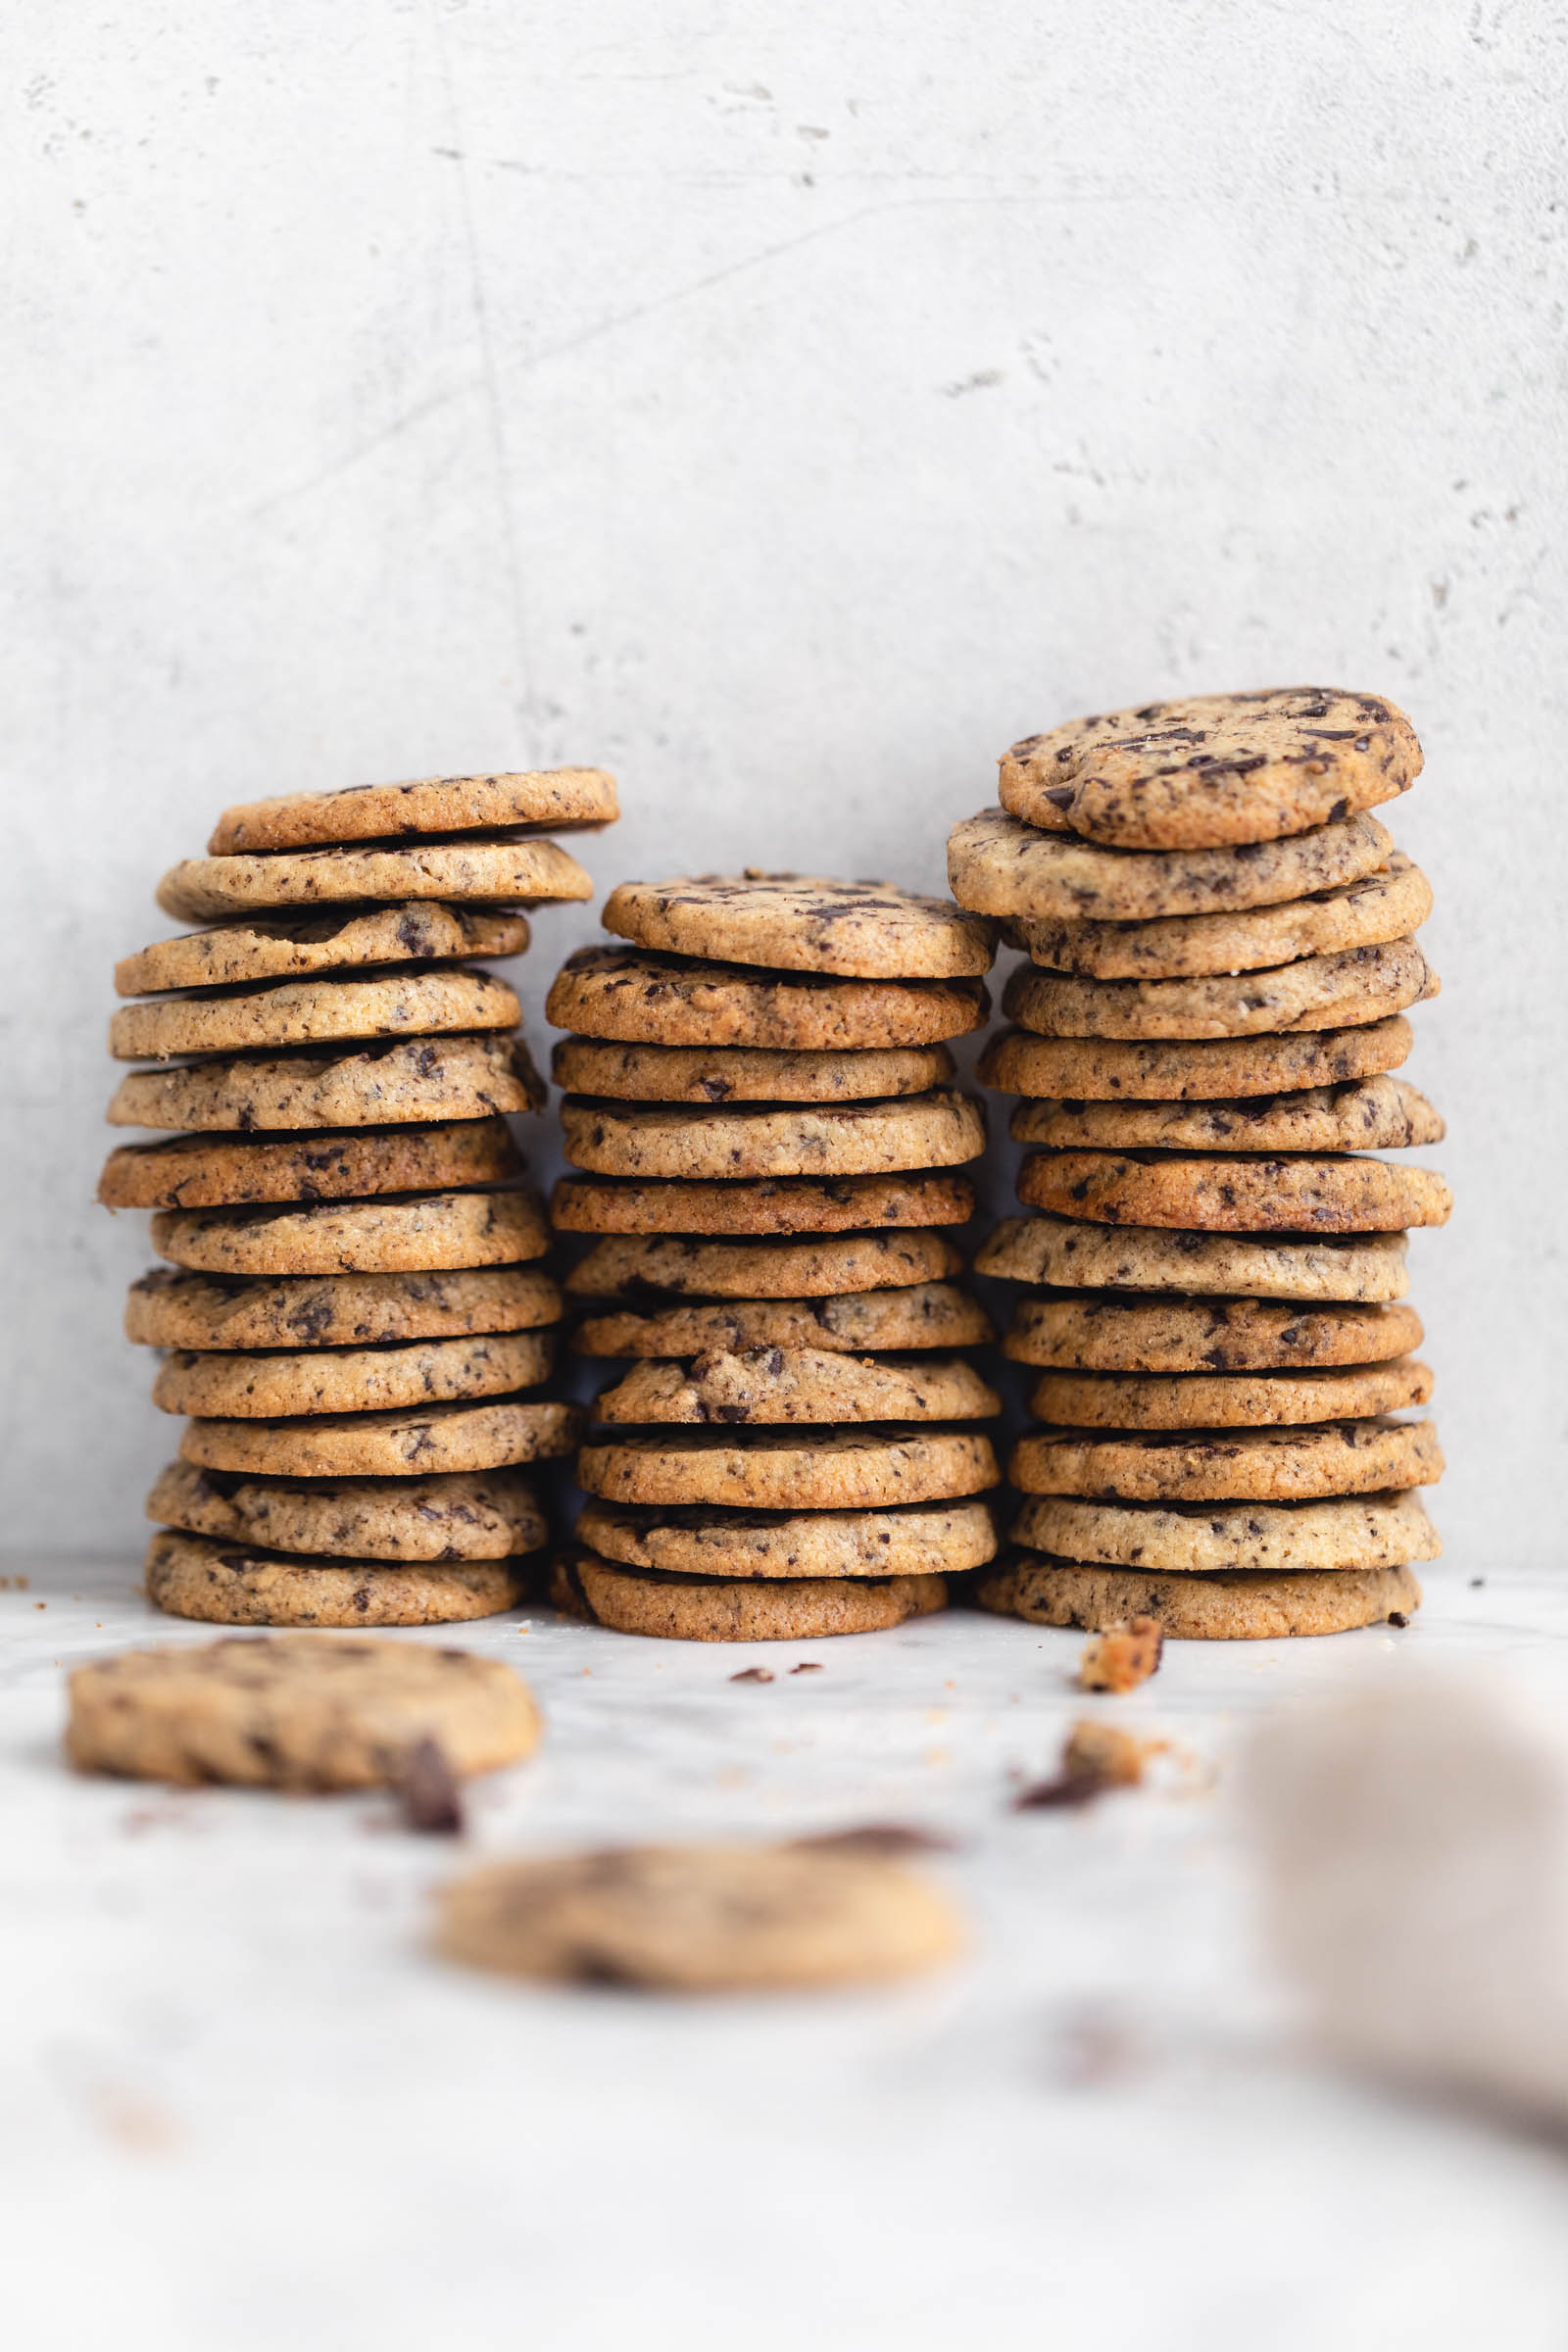 stacks of chocolate chip icebox cookies